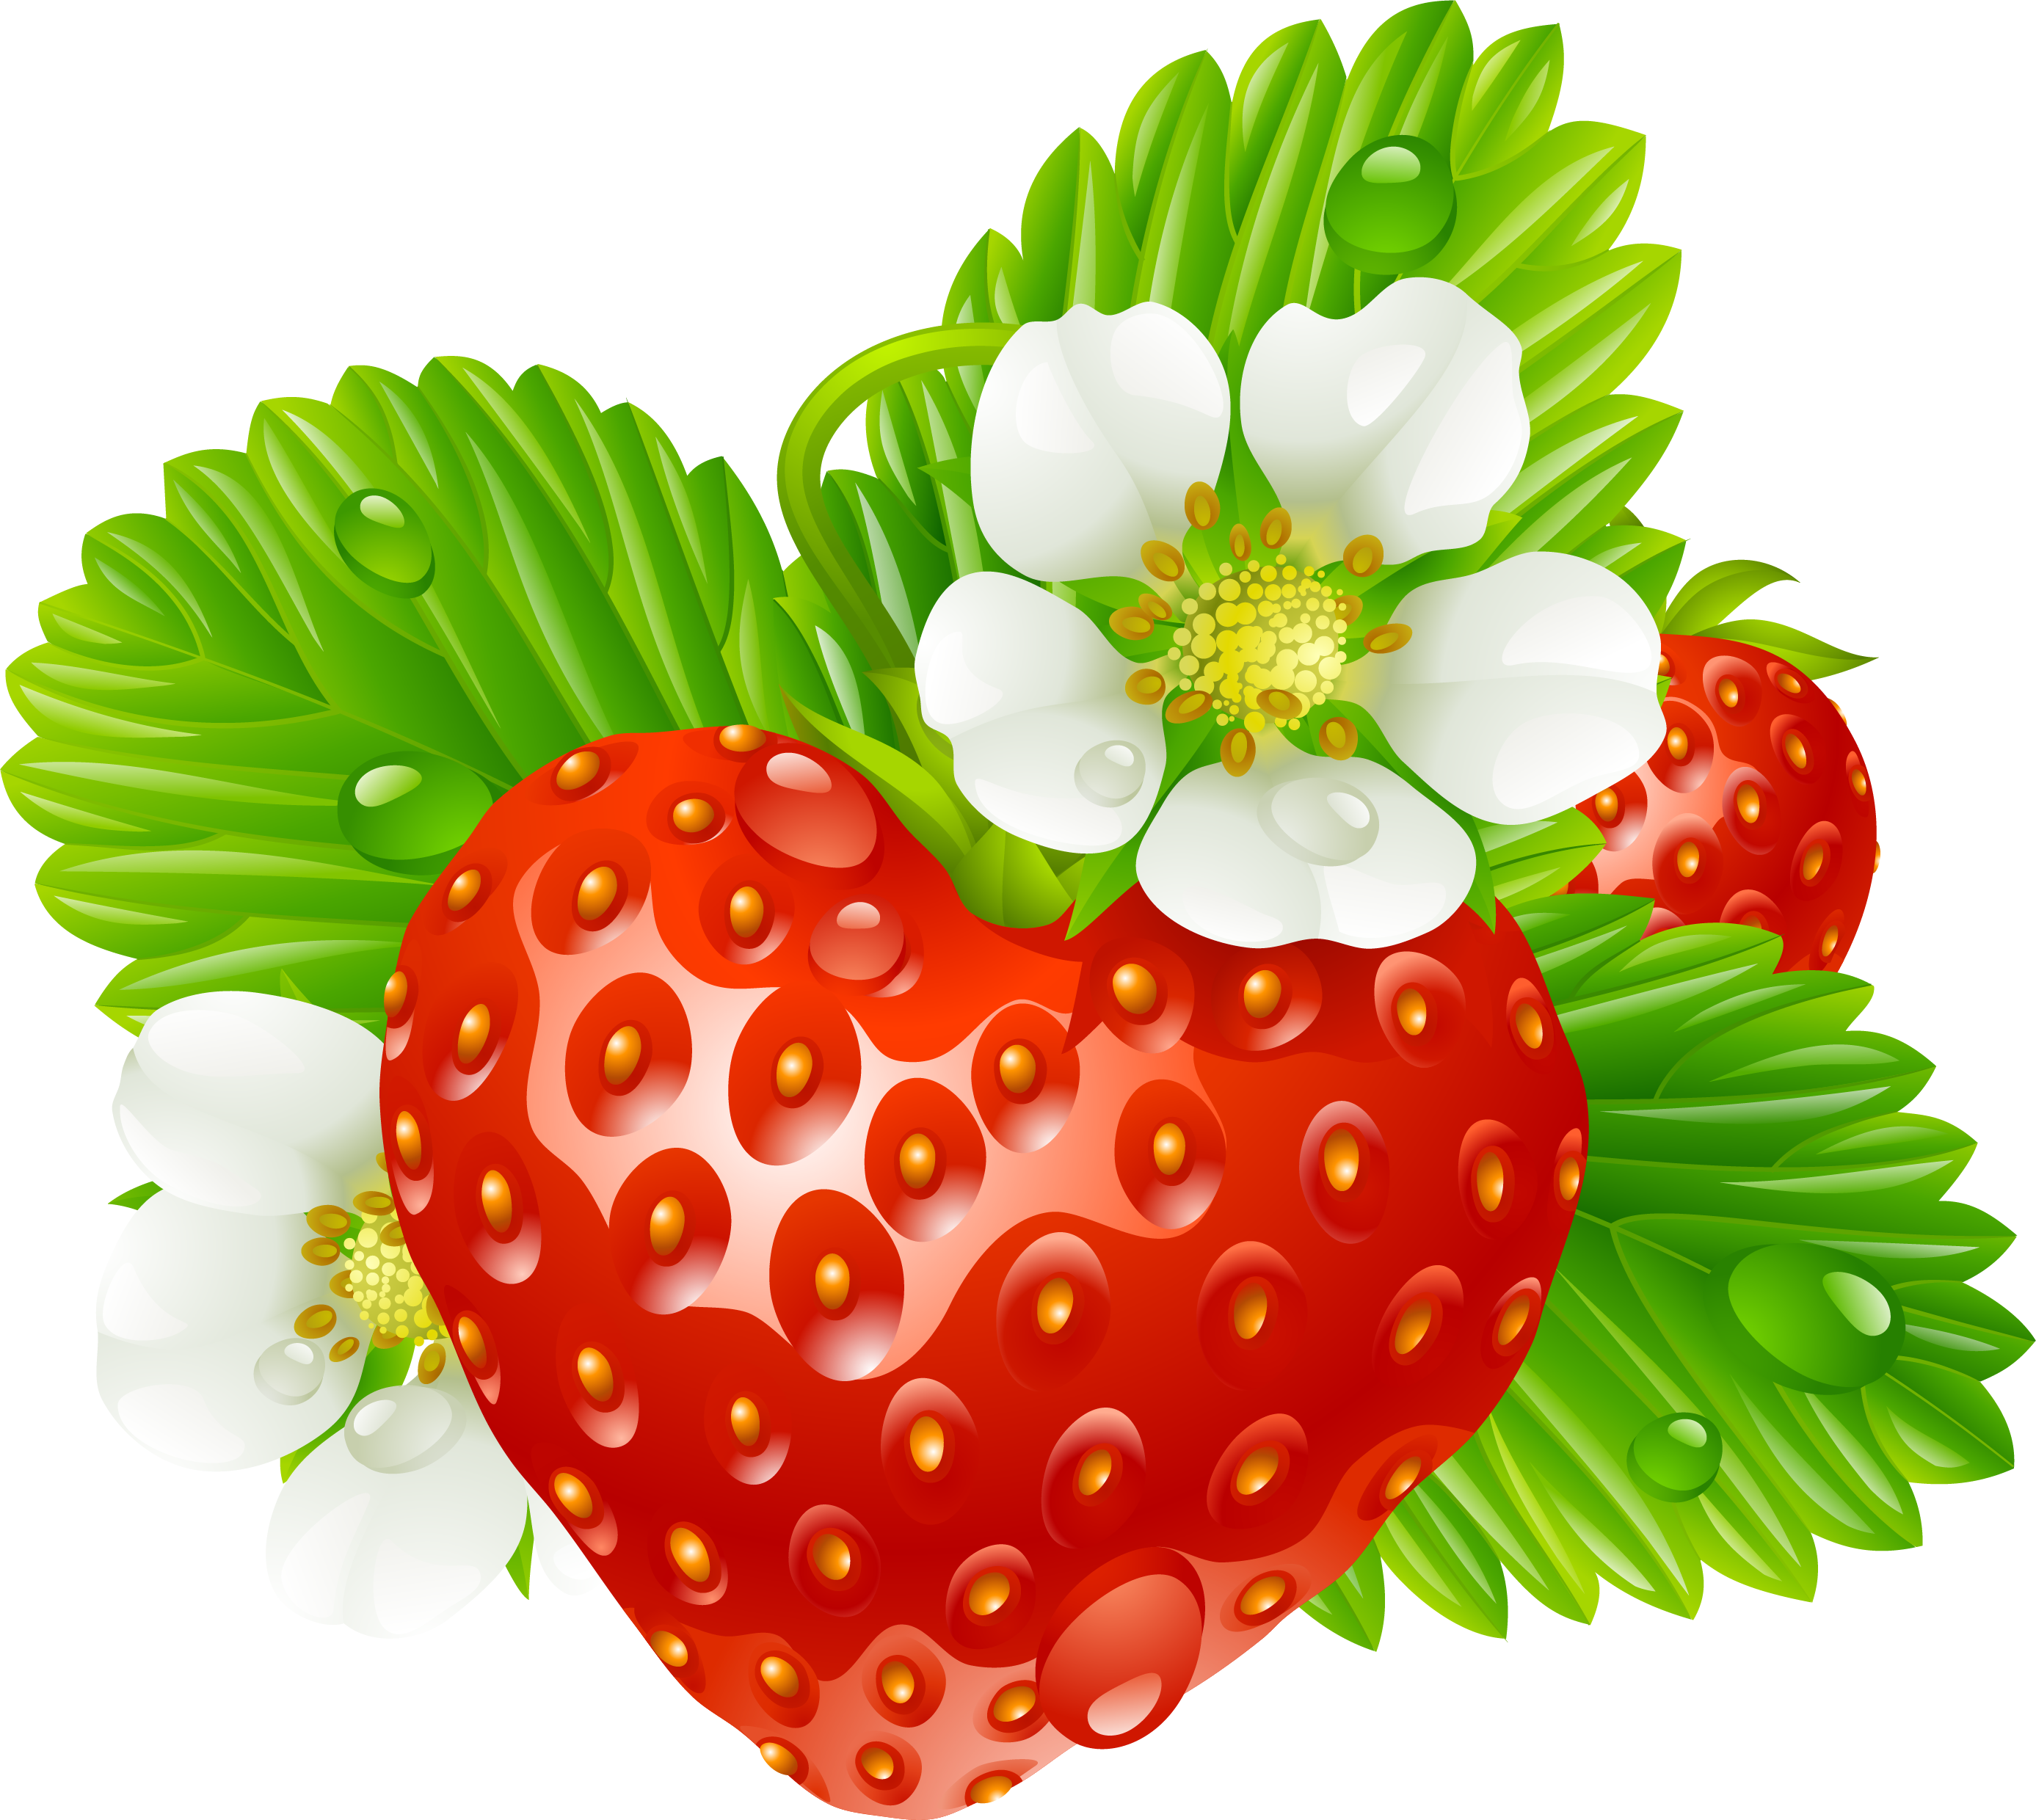 Strawberry Tea Clip art